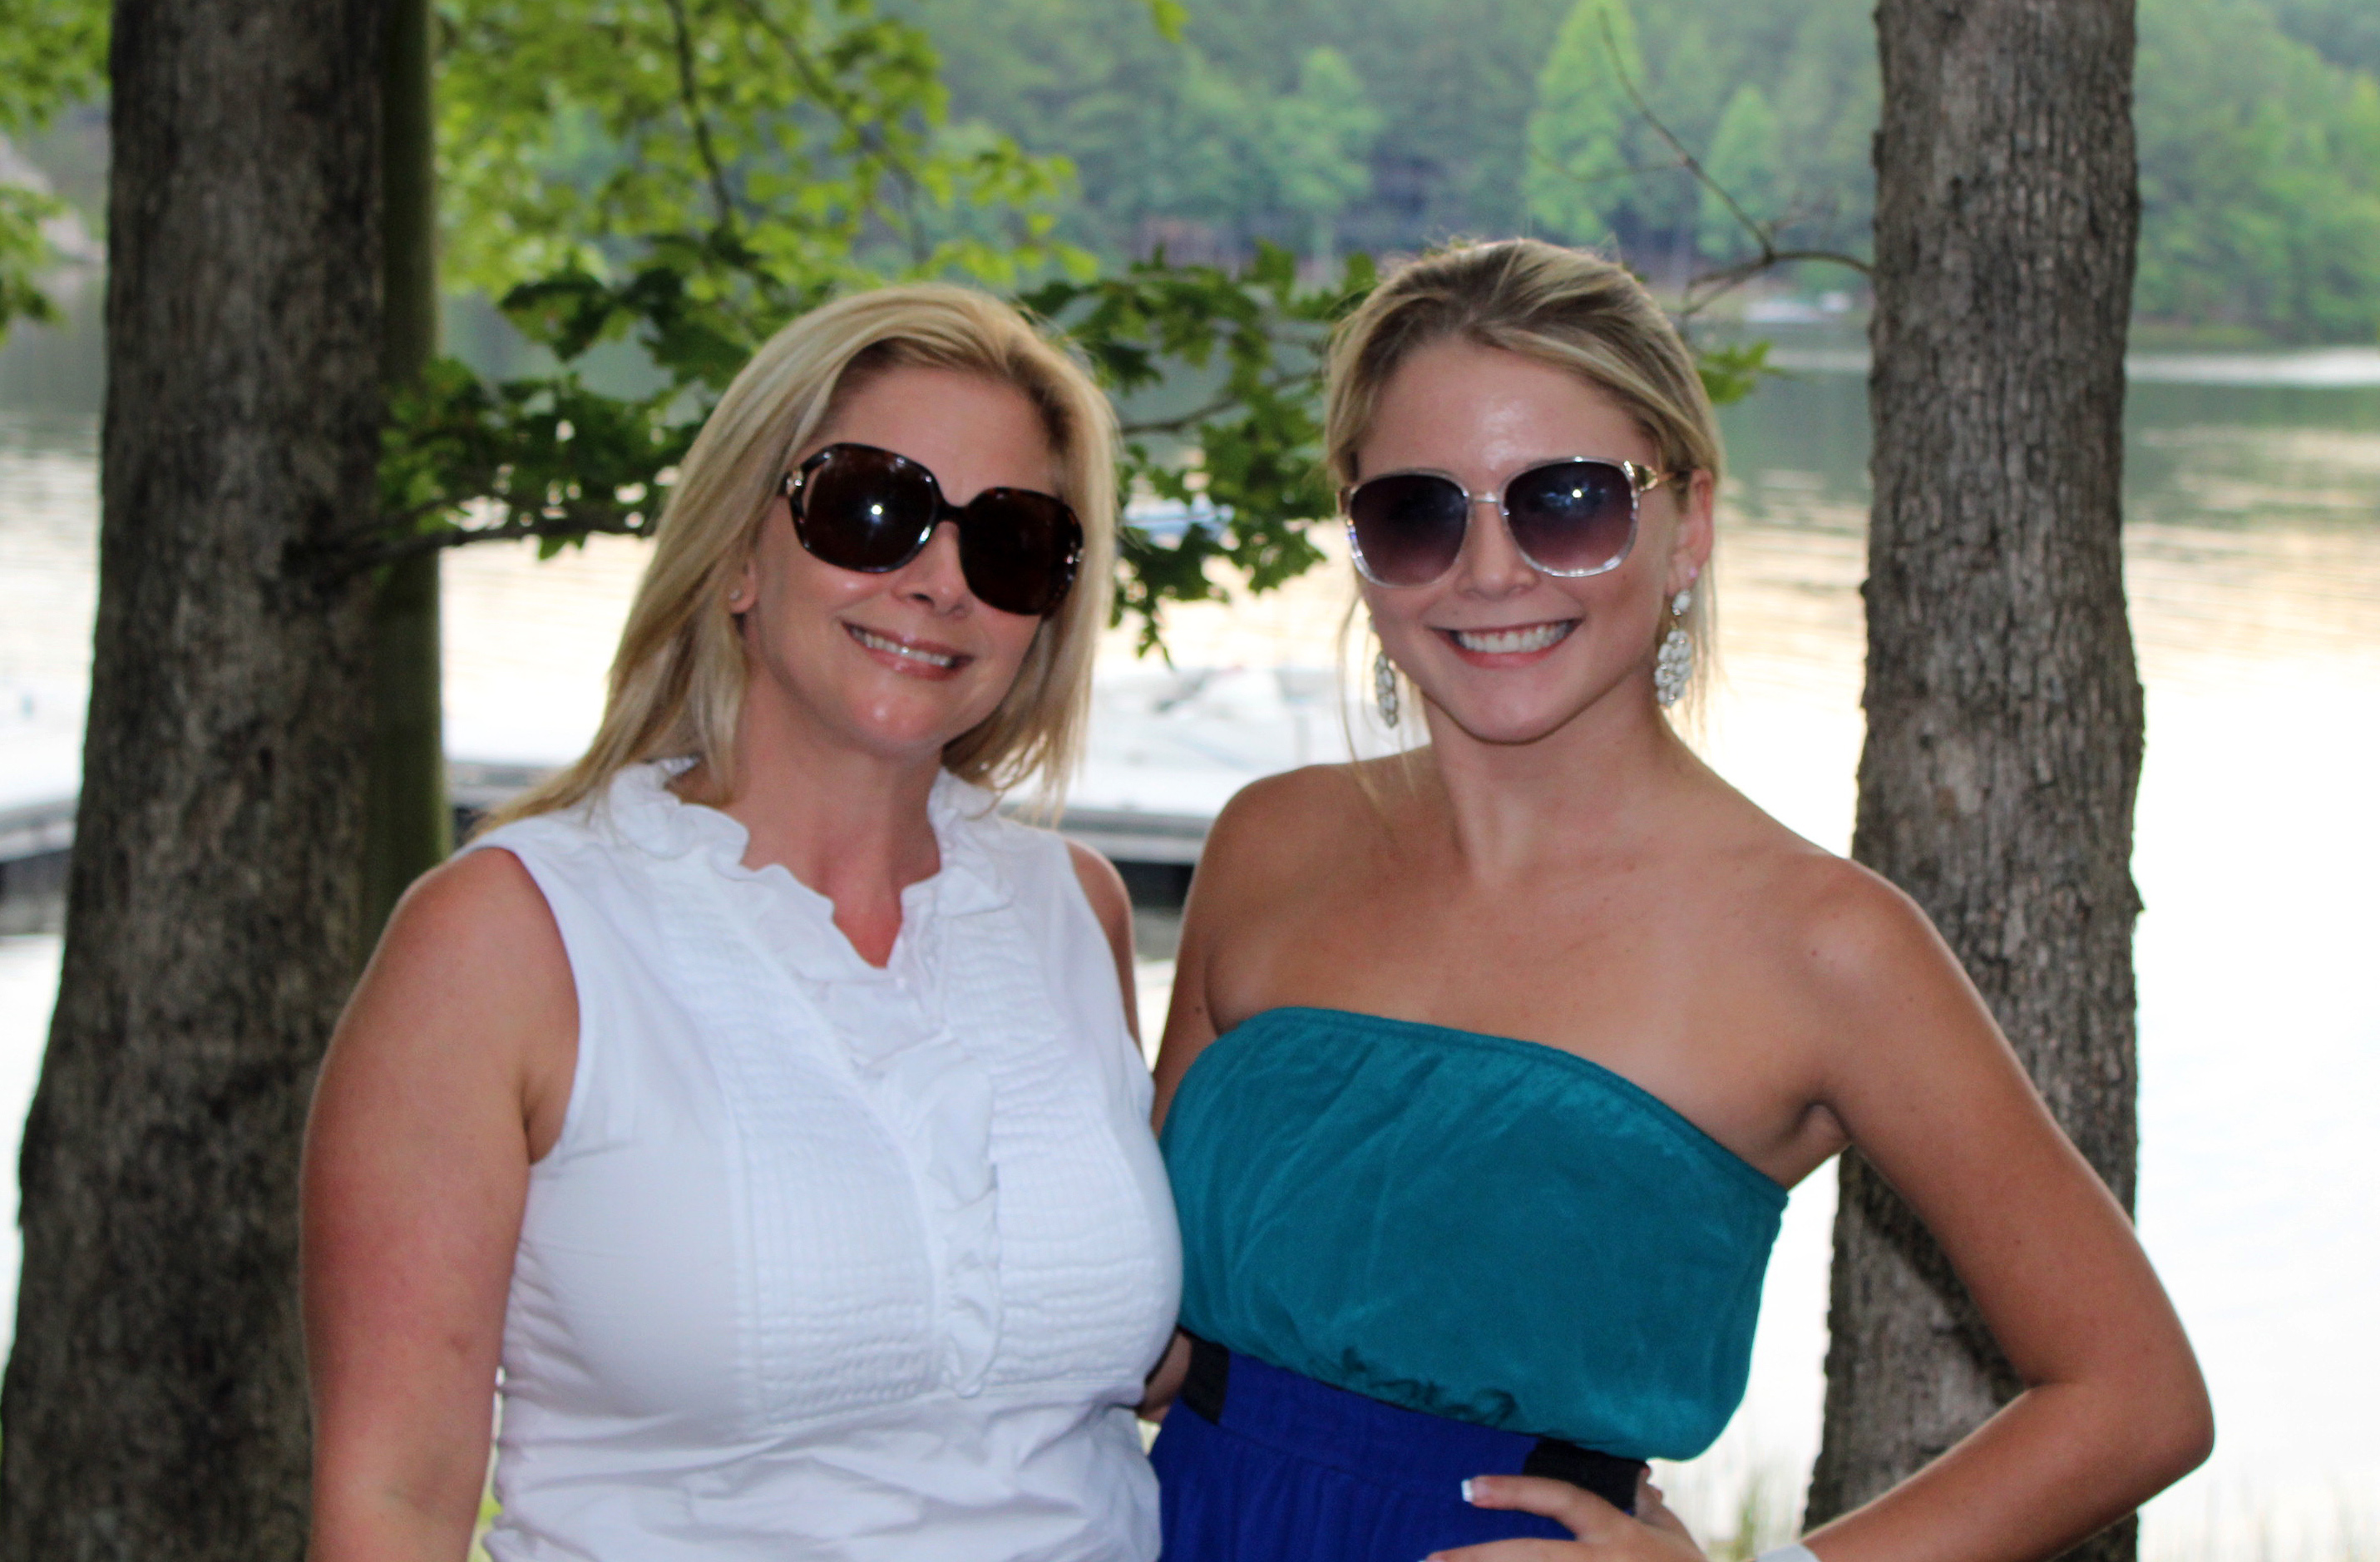 Anna and her daughter, Taylor, vacationing last summer in Mount Eagle, TN.